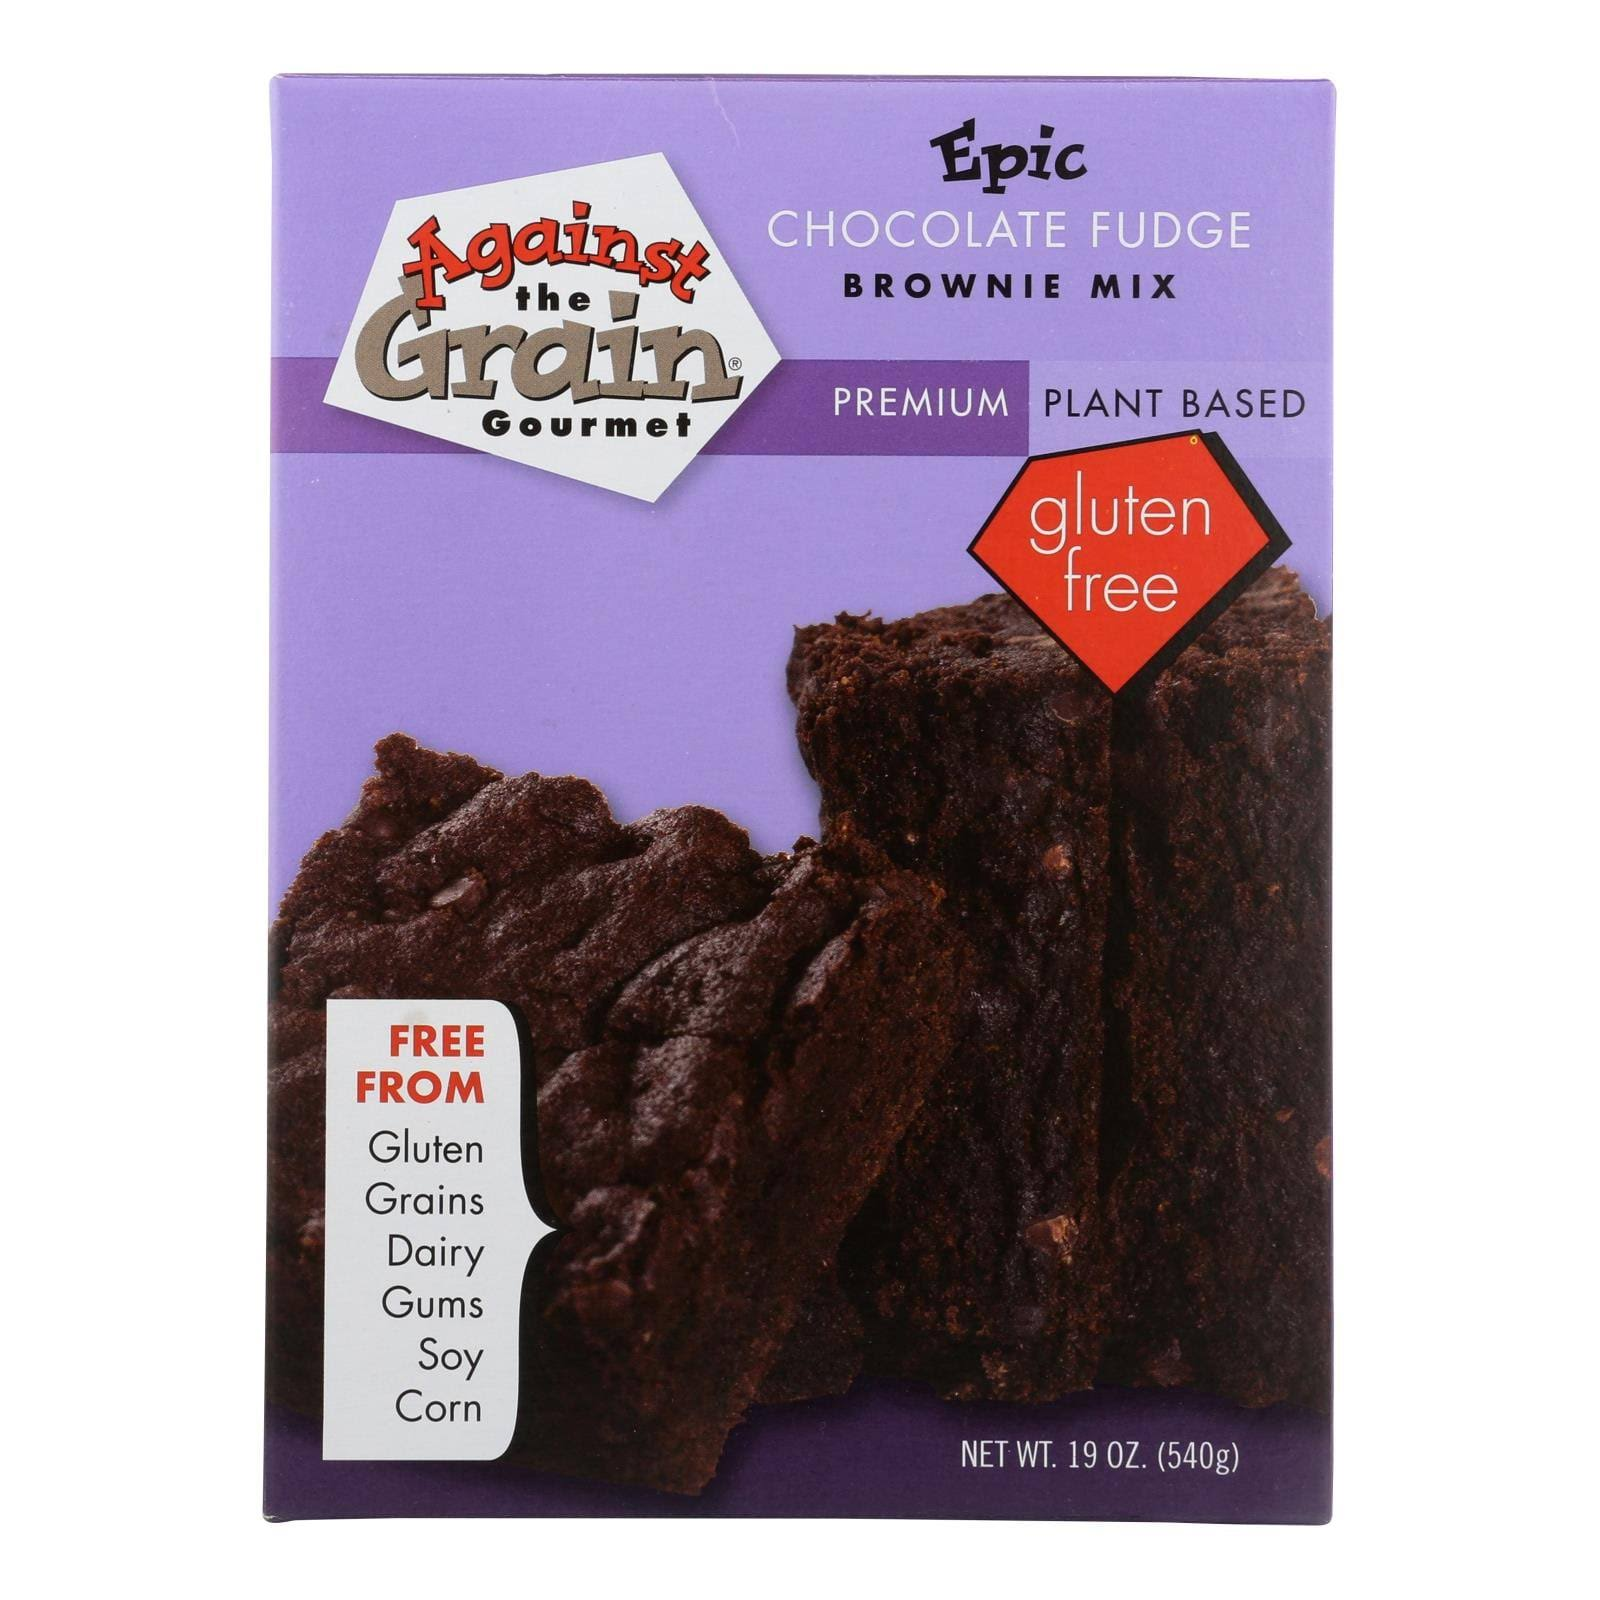 Against the Grain Brownie Mix, Epic, Chocolate Fudge - 19 oz